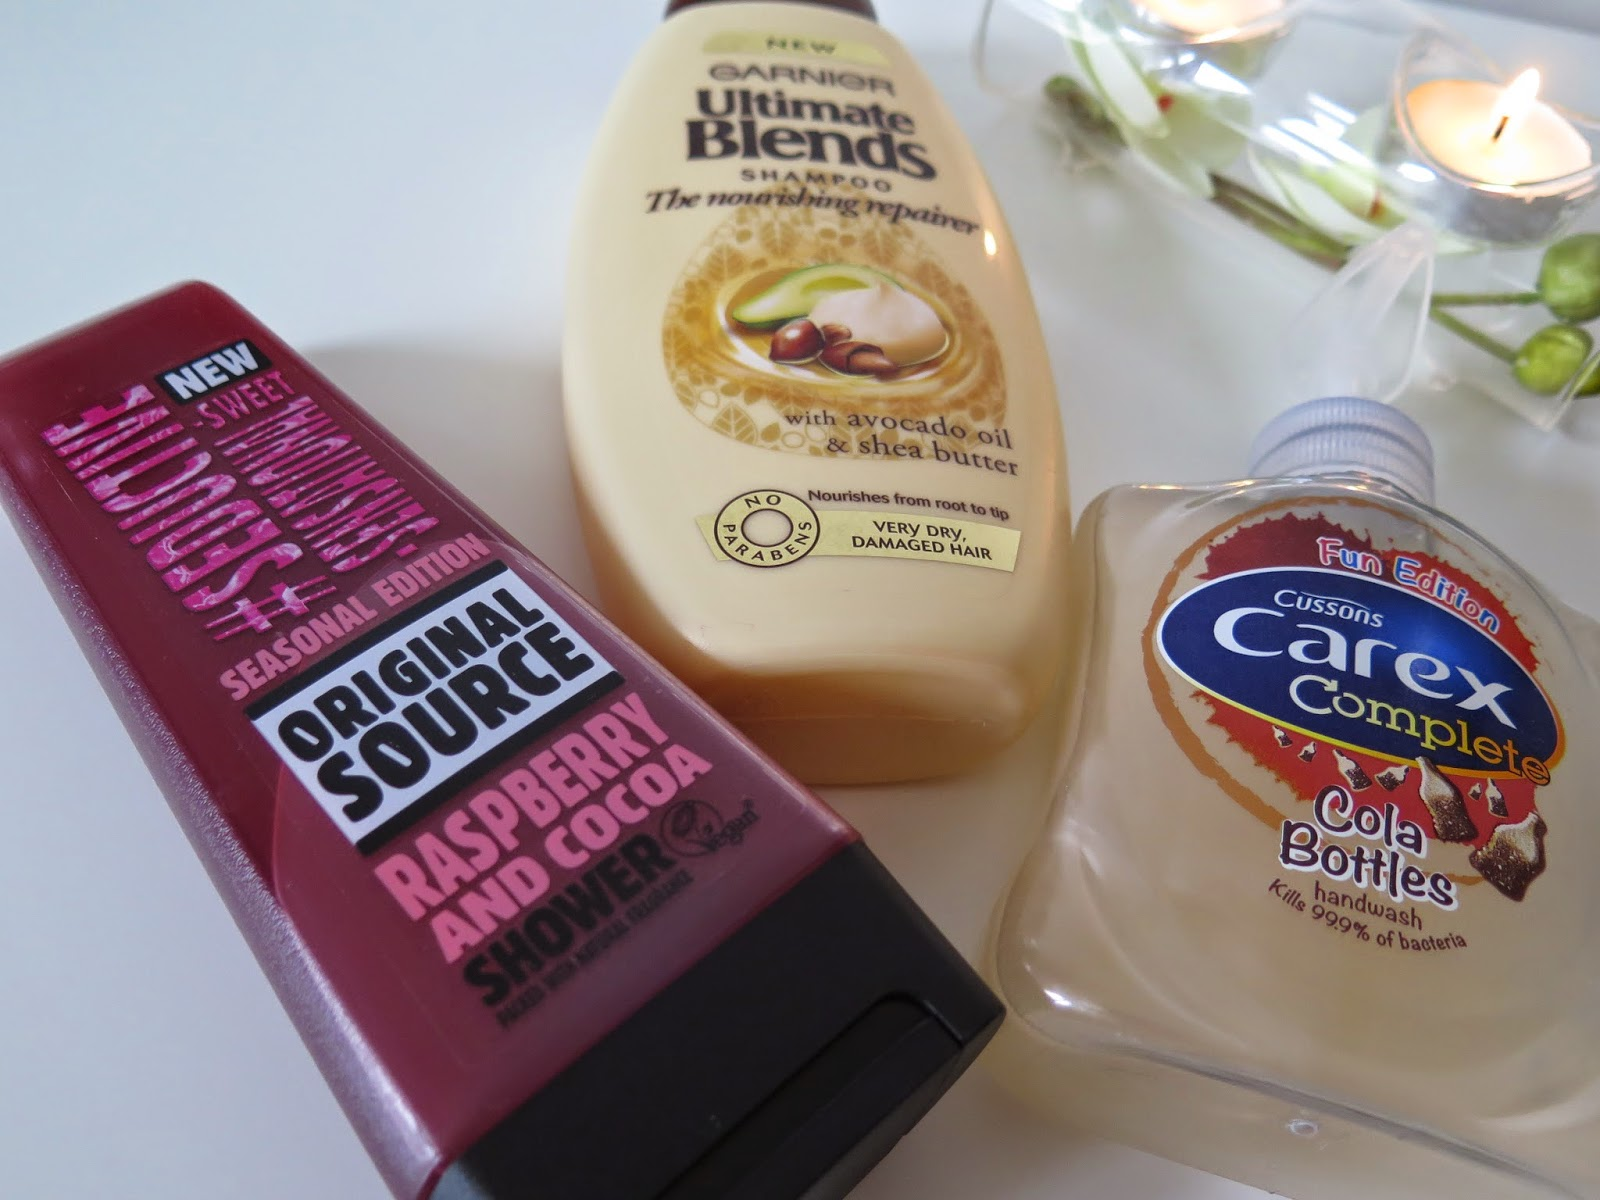 Garnier Ultimate blends, original source raspberry and cocoa, carex cola bottles